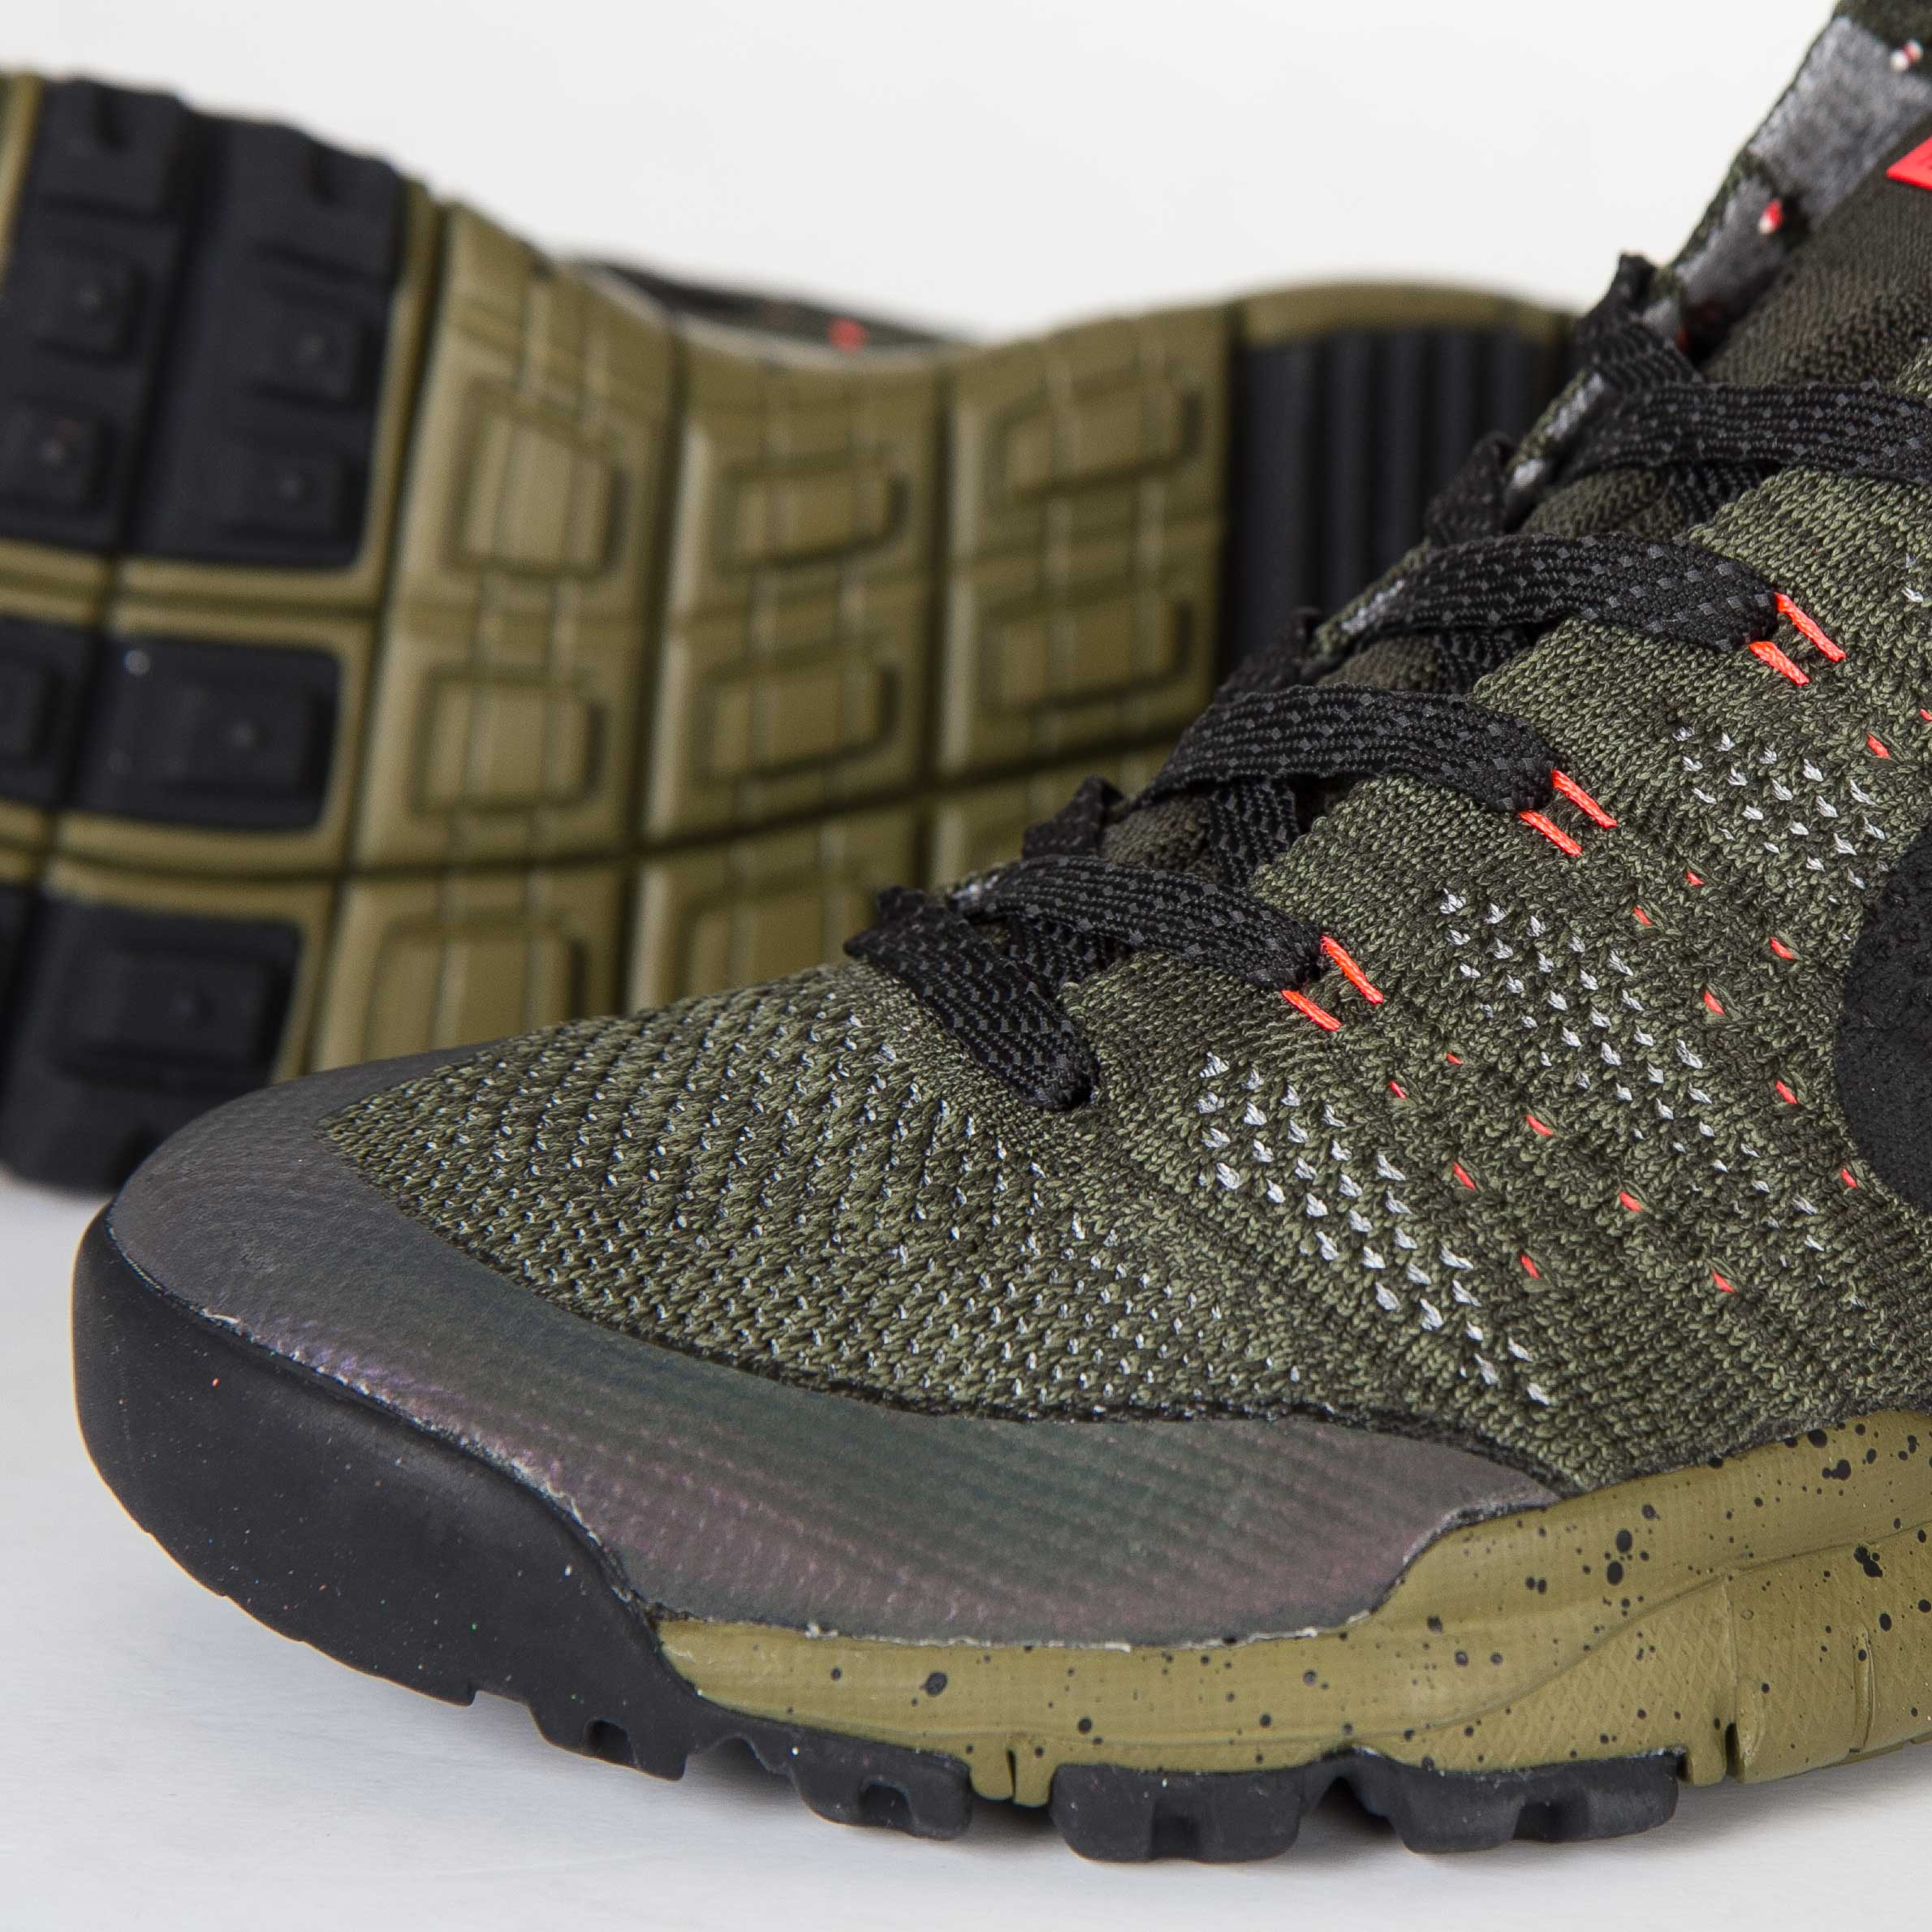 official photos 15adb baf18 Nike Flyknit Trainer Chukka Sneakerboot - 7. Close